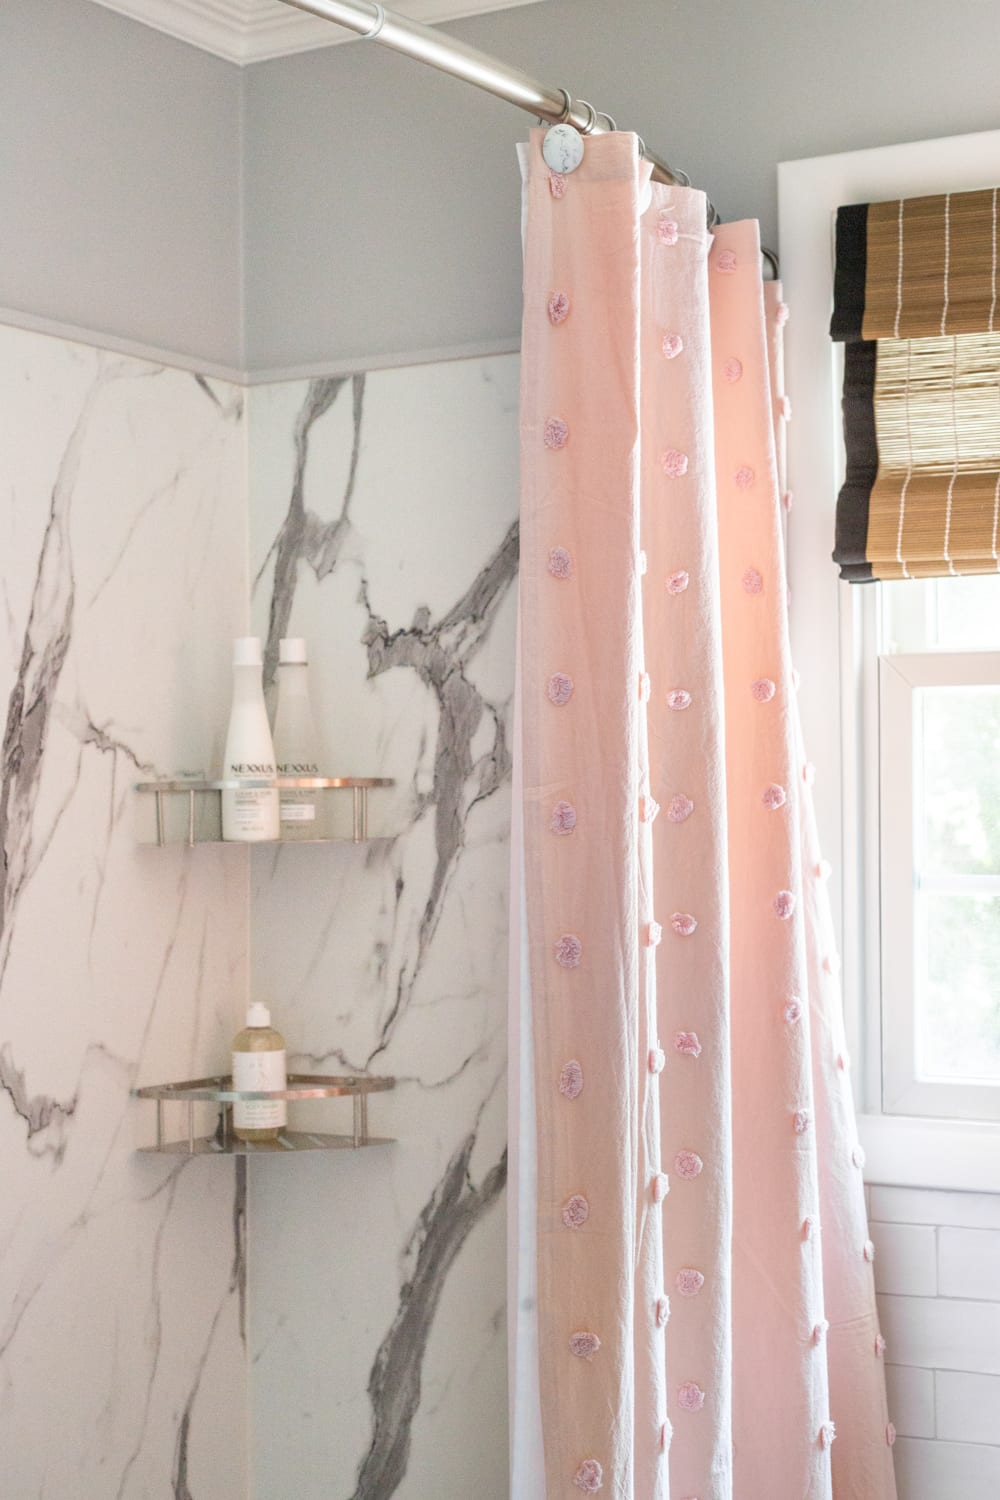 Girls' Bathroom Decor Details & Sources | Faux marble shower walls from American Standard Passage Collection